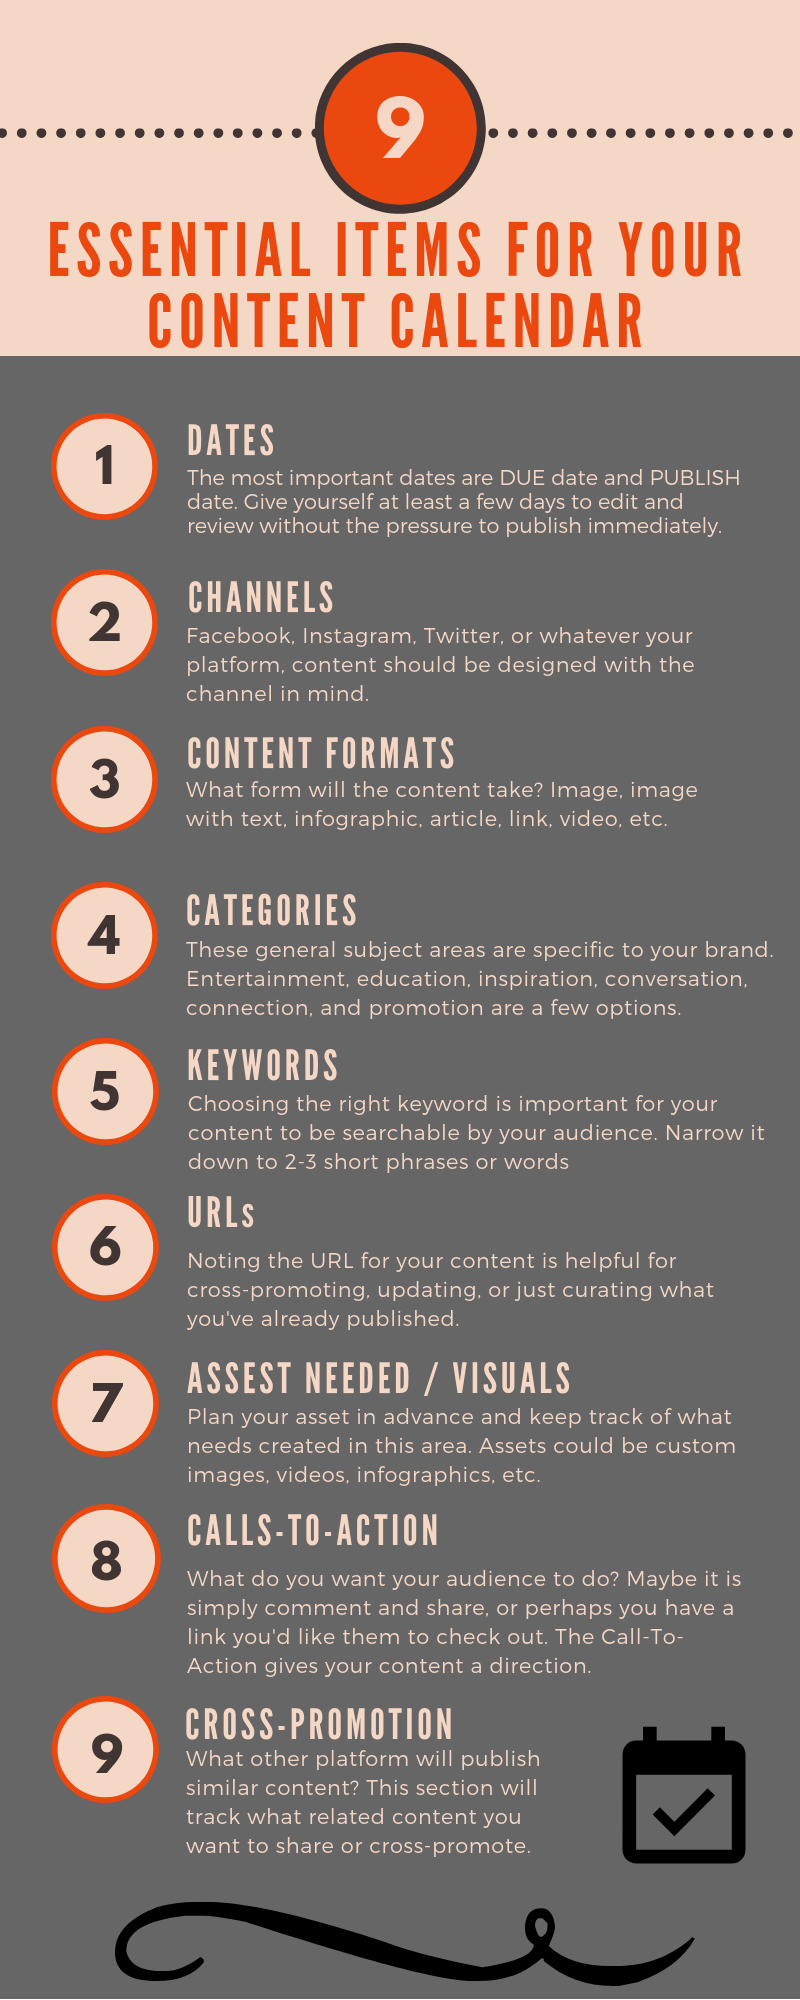 Essential Content Calendar Items infographic